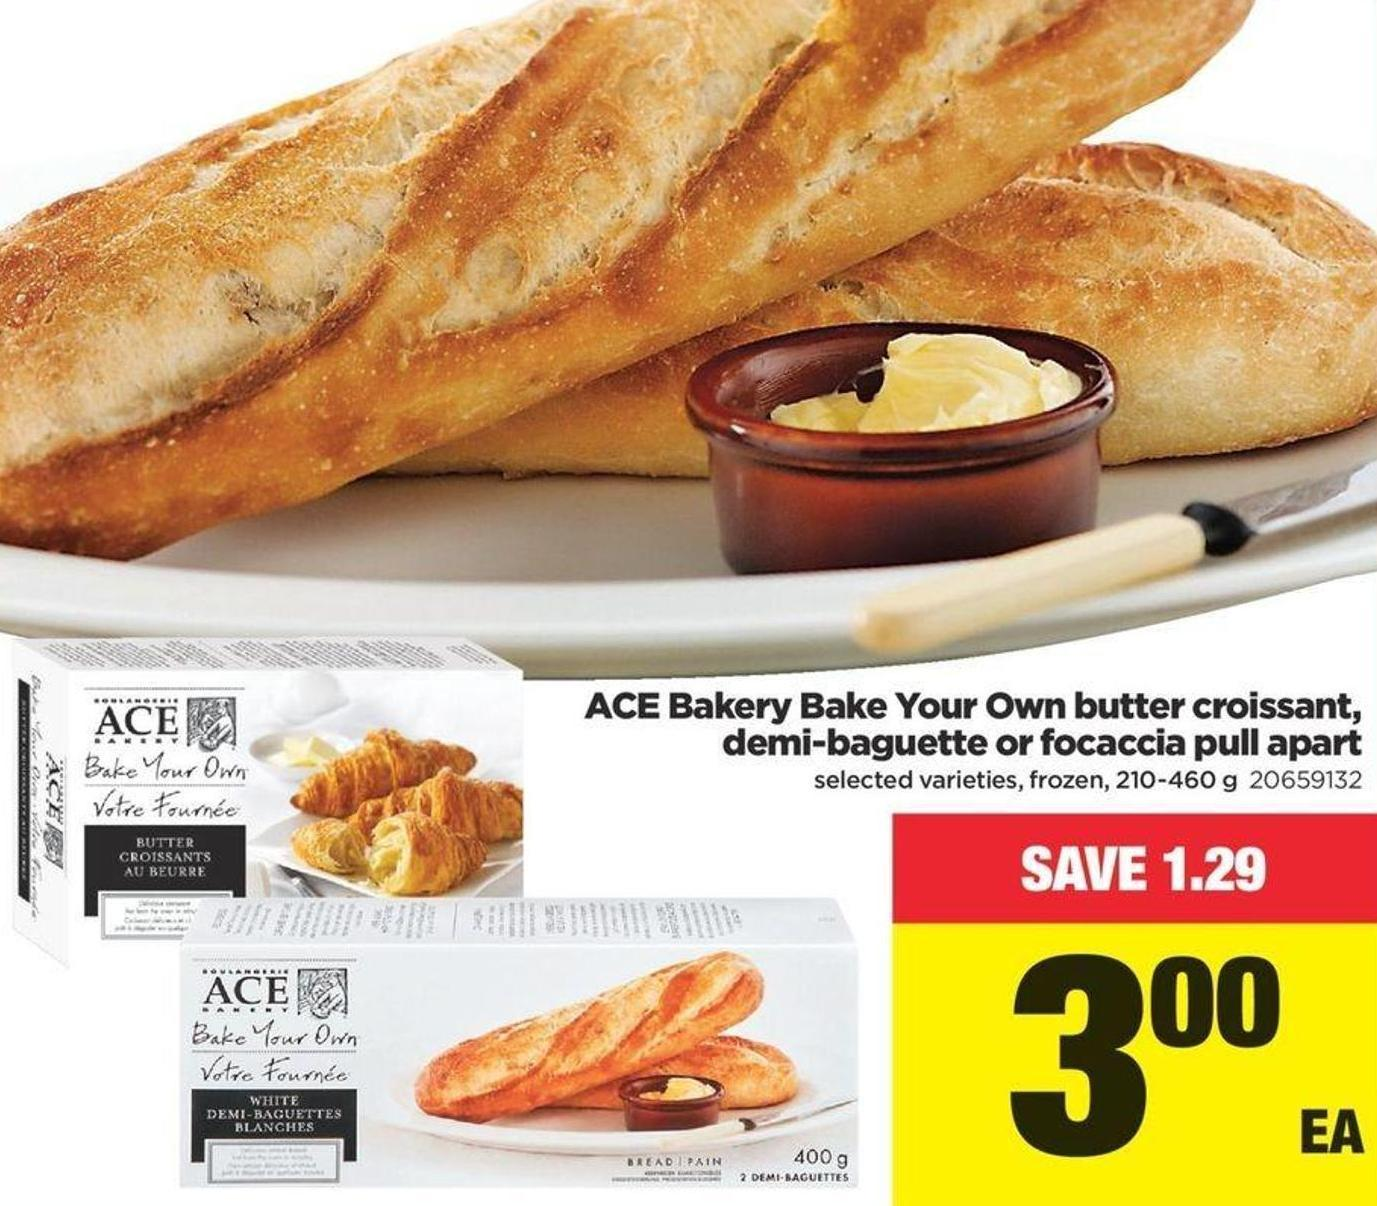 Ace Bakery Bake Your Own Butter Croissant - Demi-baguette Or Focaccia Pull Apart - 210-460 g